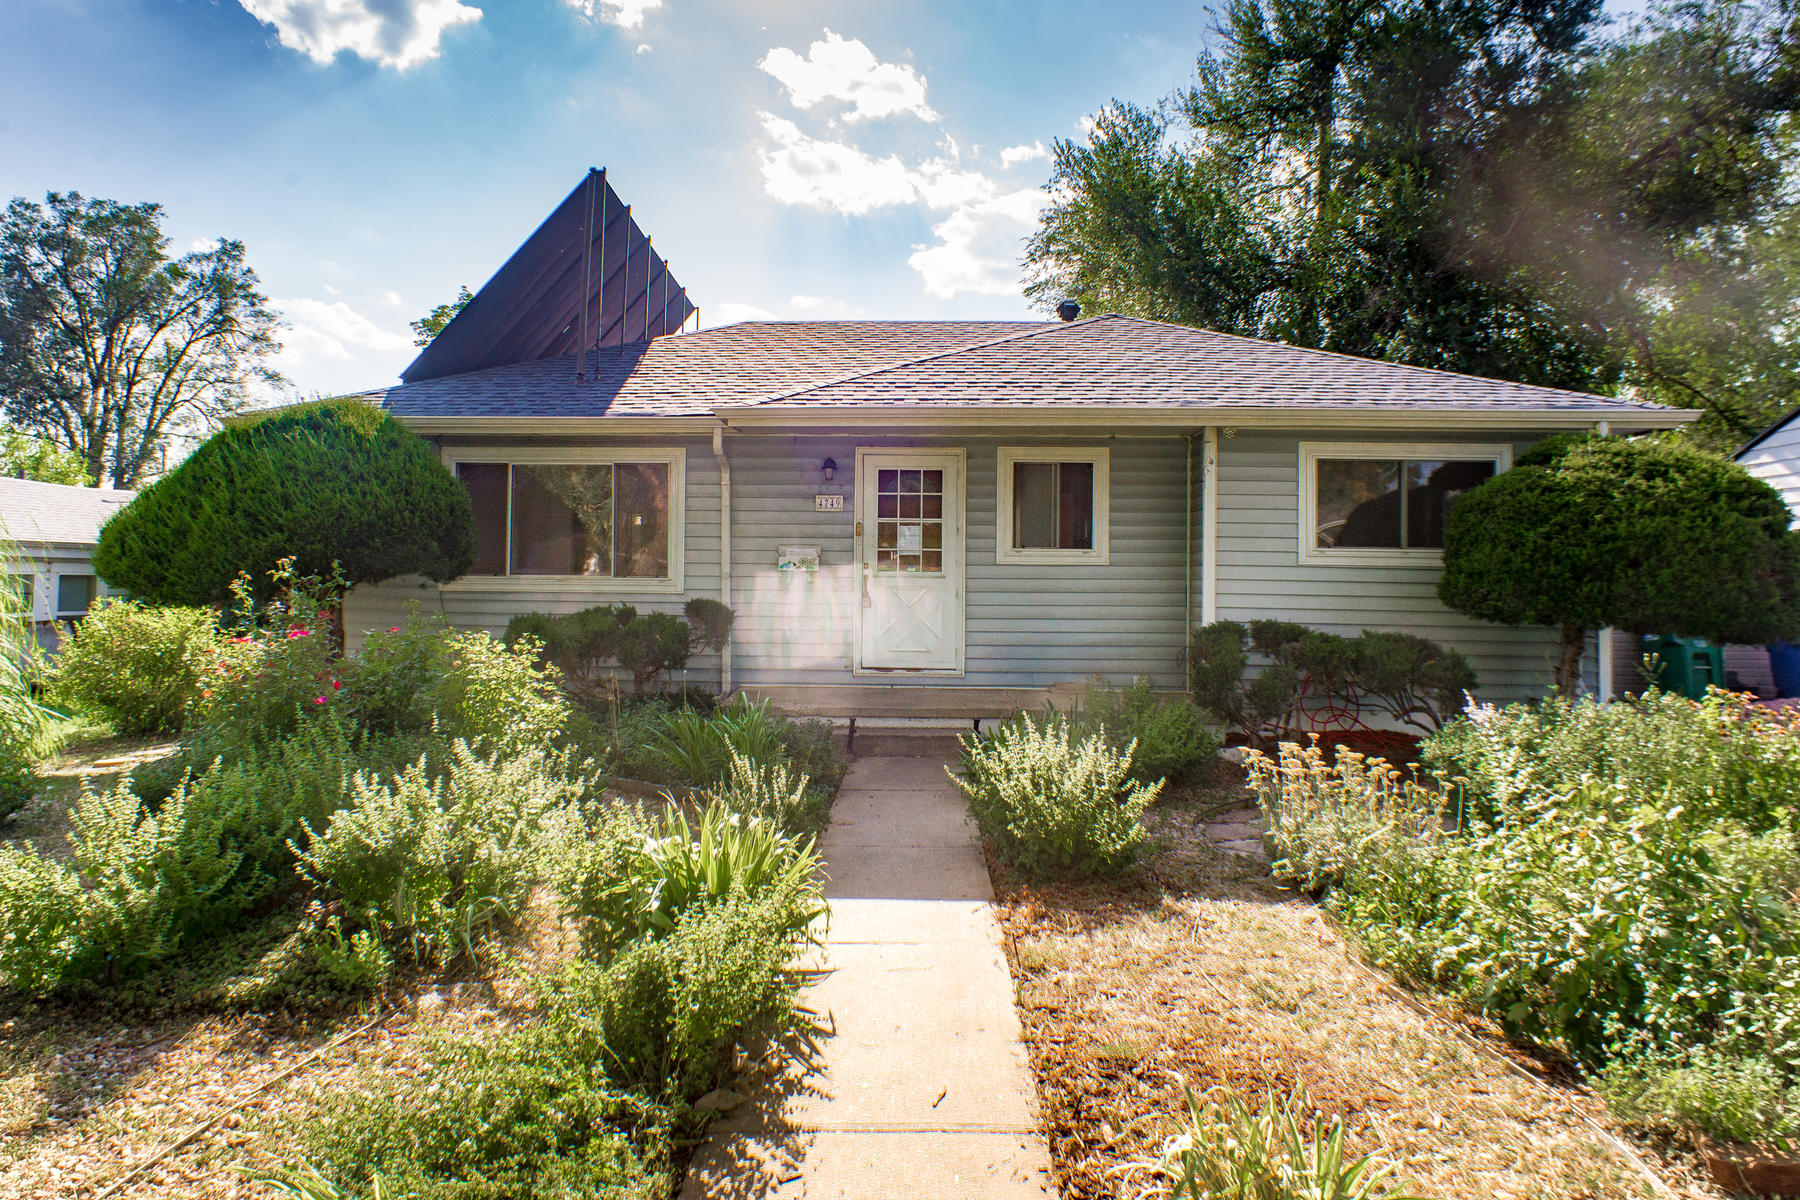 Single Family Home for Active at ESTATE SALE-GREAT OPPORTUNITY FOR SWEAT EQUITY OR FLIP! 4749 S Sherman St Englewood, Colorado 80013 United States